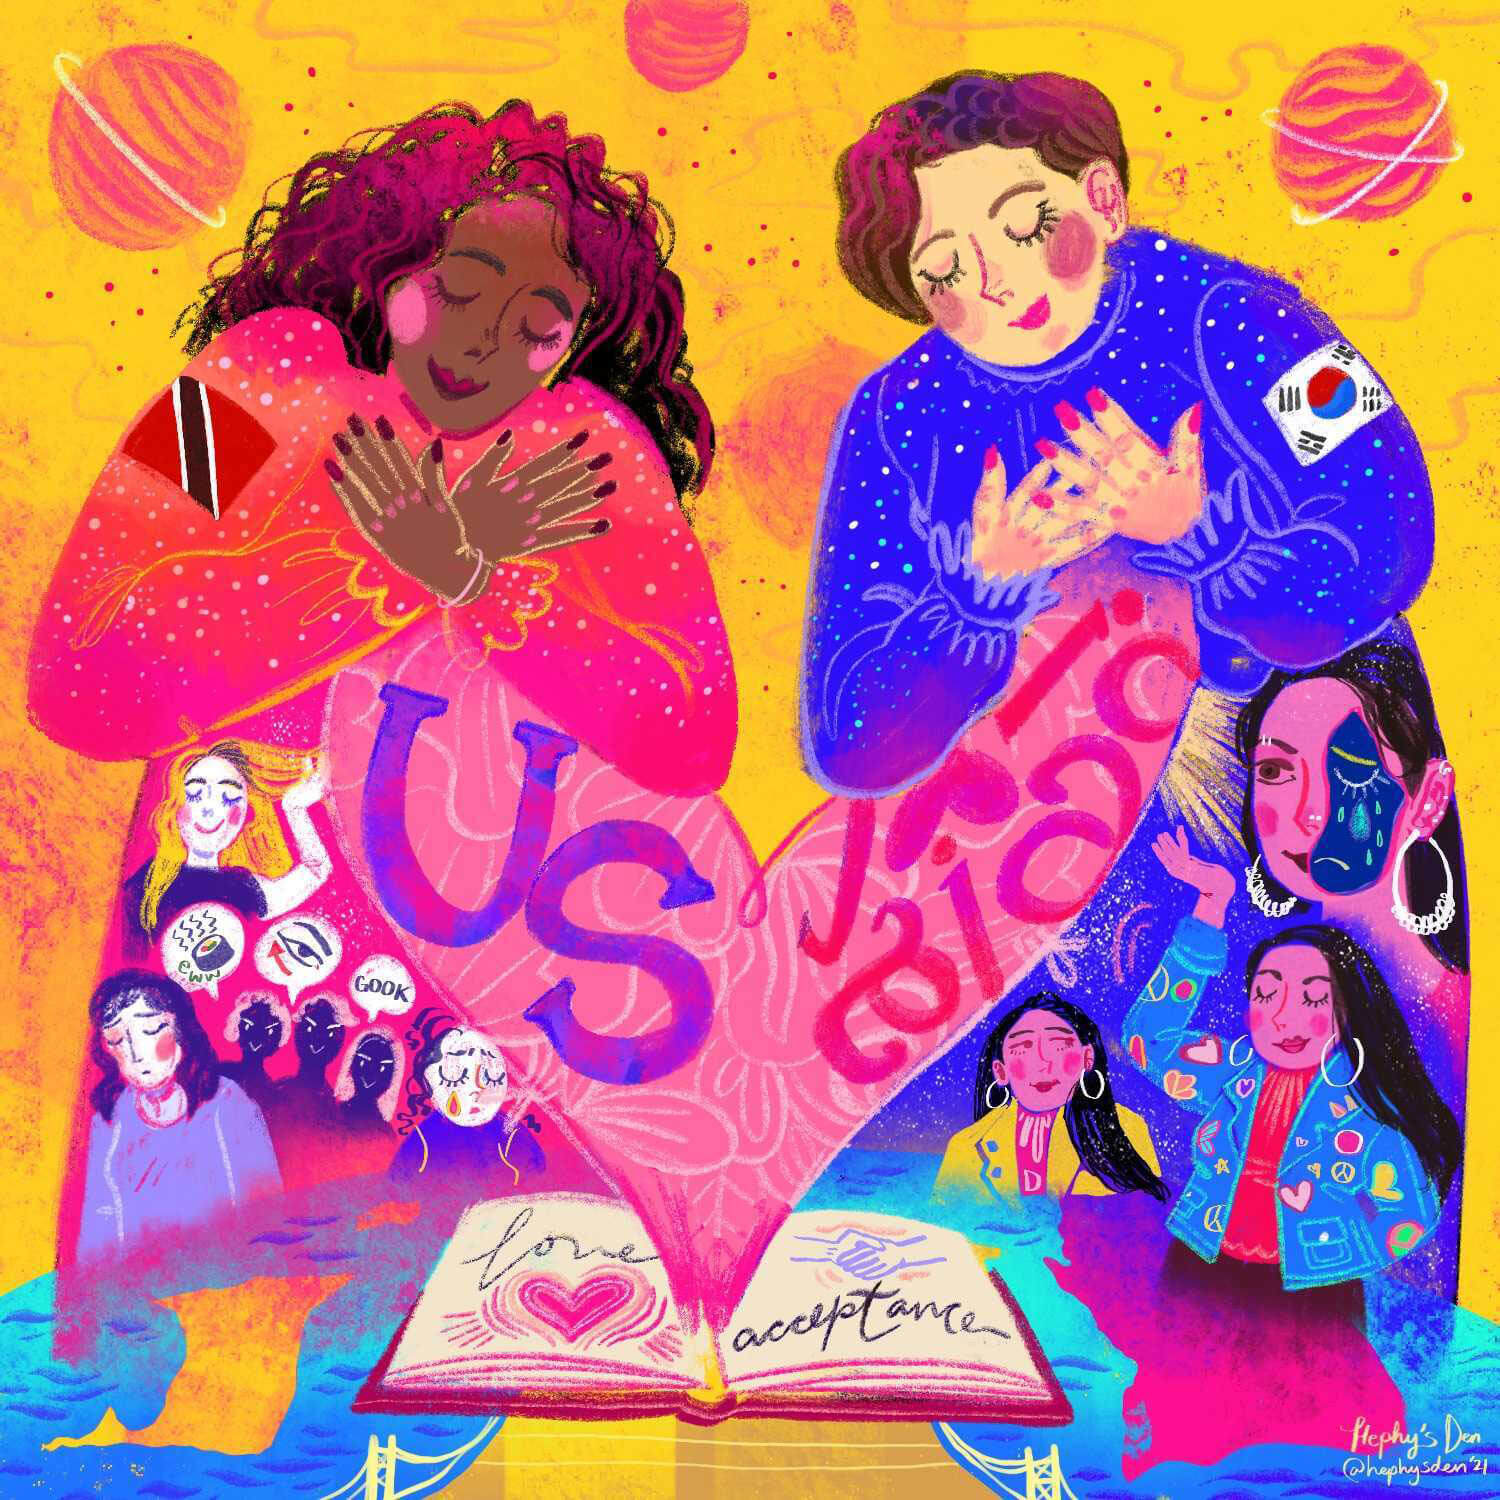 An image of two women connecting over an open book of poetry with words like love and acceptance